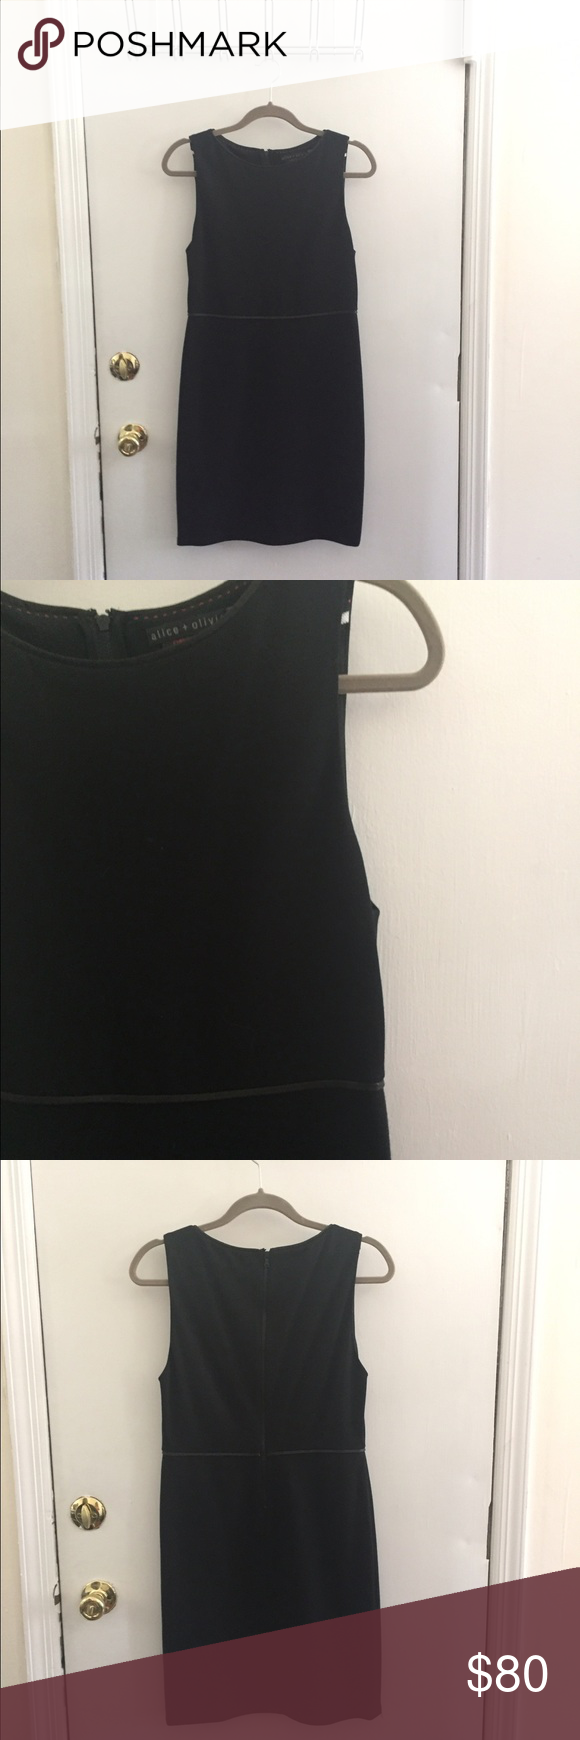 NWT Alice + Olivia Black Sheath Dress Size 8 NWT Alice + Olivia Black Sheath Dress. Size 8. Has leather trim around waist. Rayon blend. Very stretchy, forgiving fit. Great LBD that can go from work to play. Hits above knee Alice + Olivia Dresses Midi